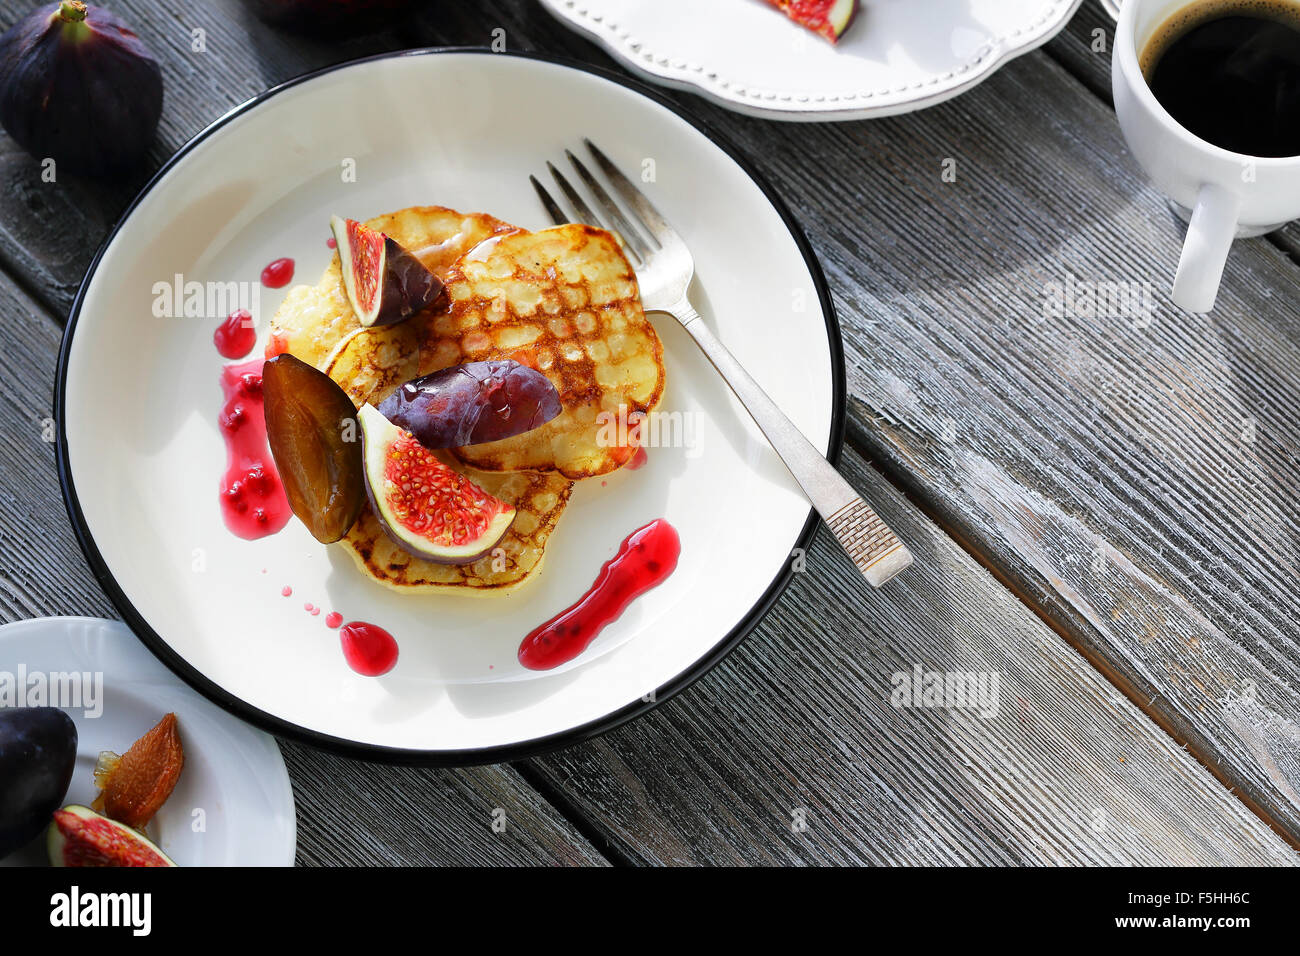 brunch pancakes with figs jam, food close-up - Stock Image